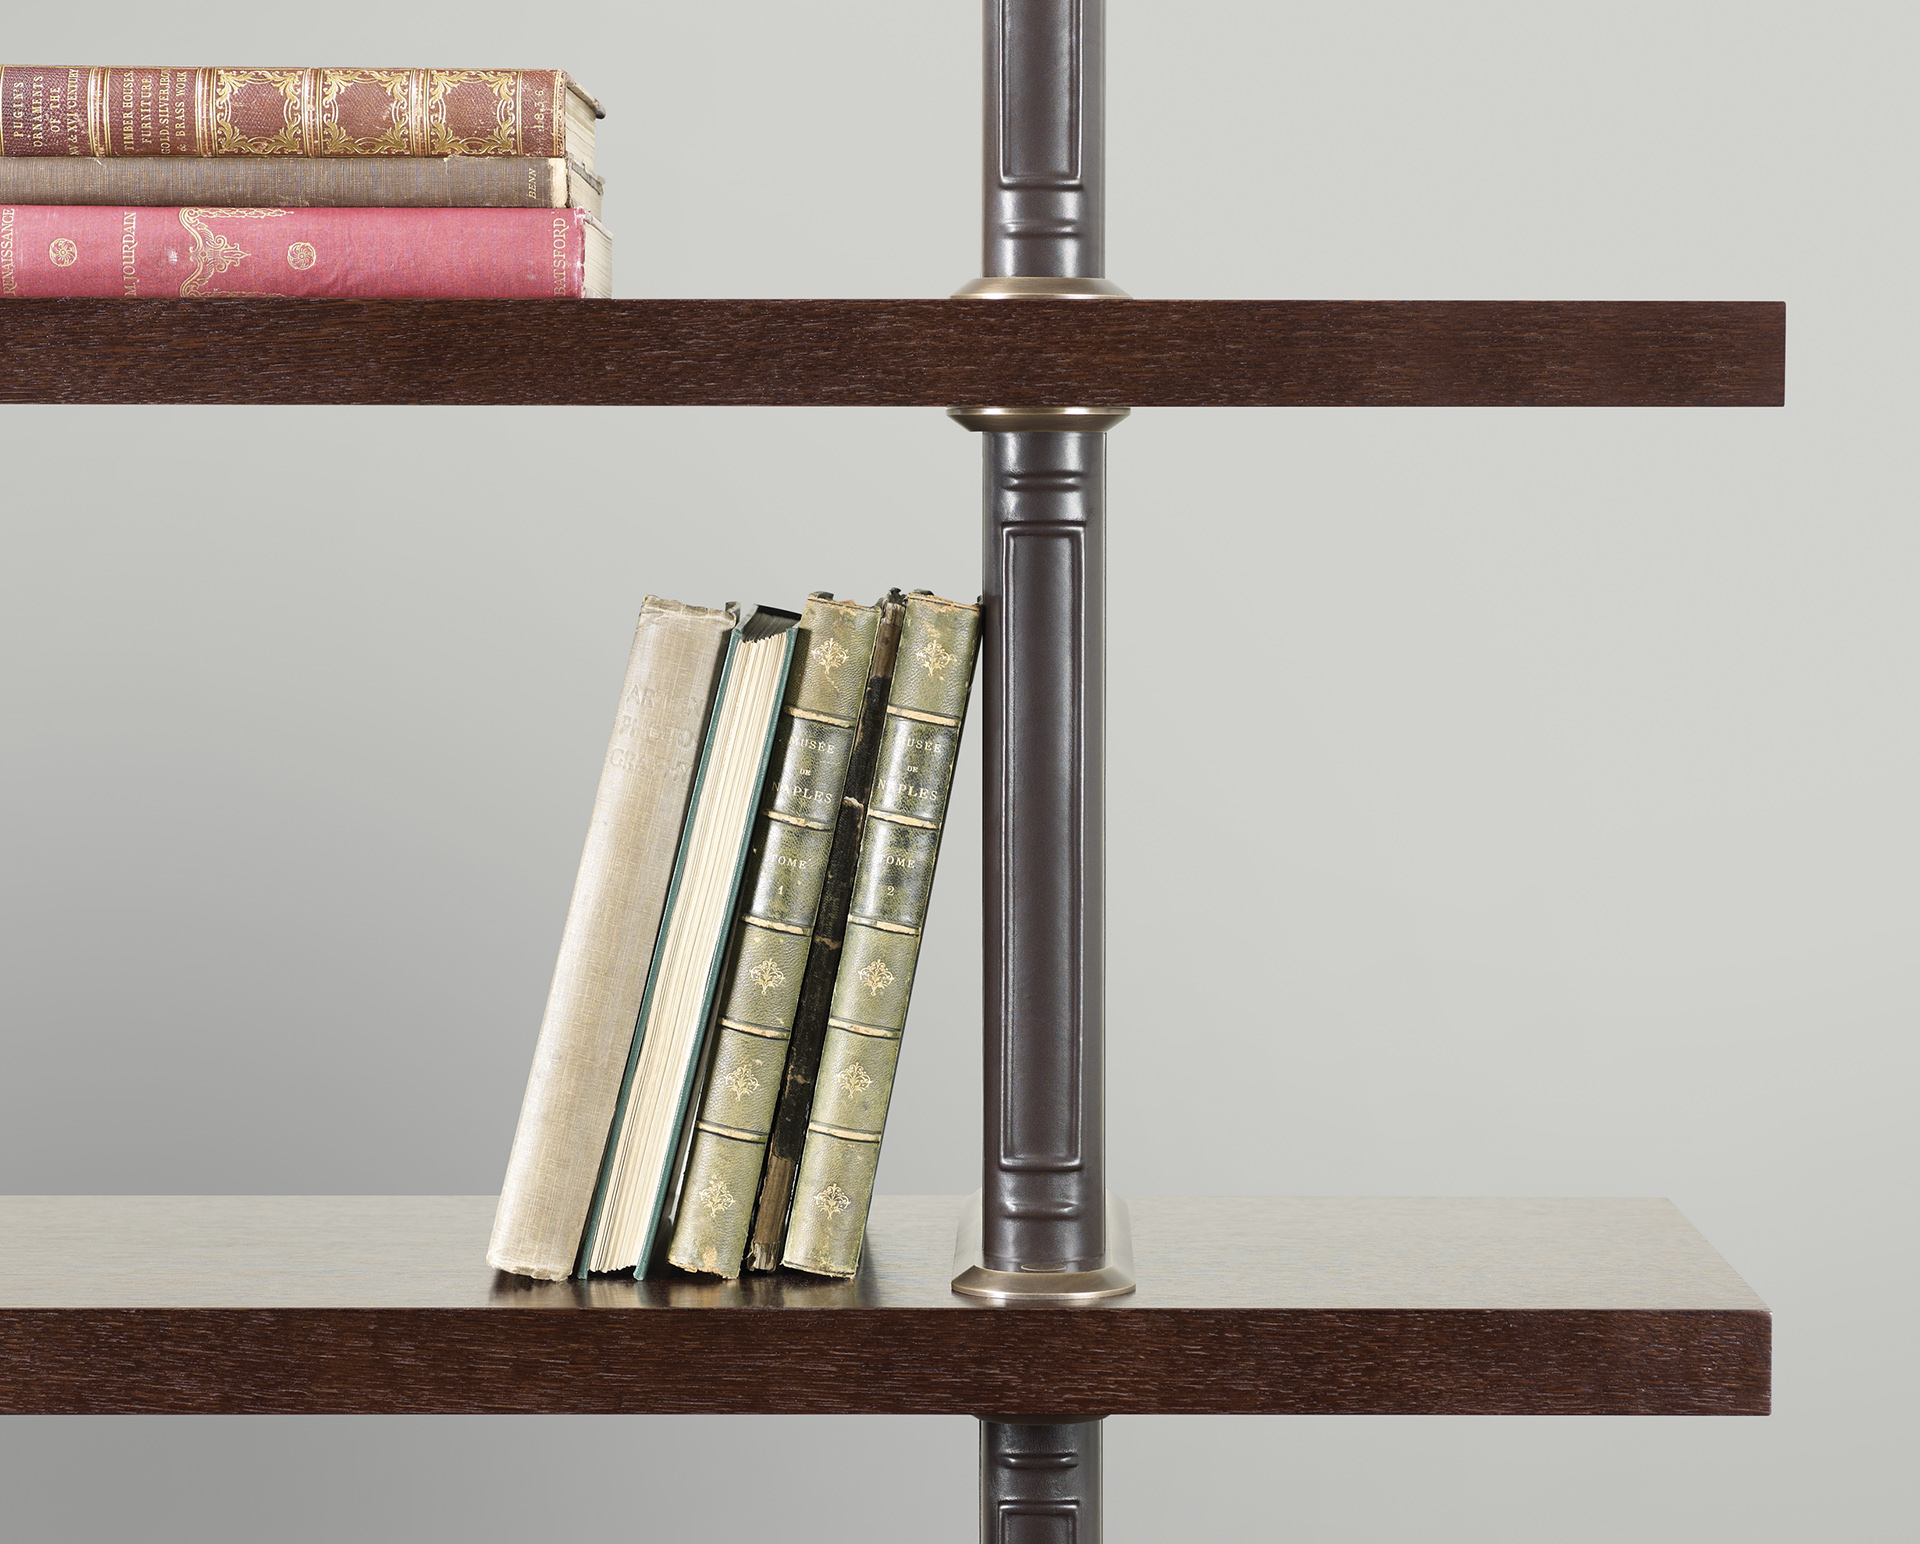 Detail of Peggy, a modular wooden bookcase with cloth or leather covered supports and bronze details, from Promemoria's catalogue | Promemoria